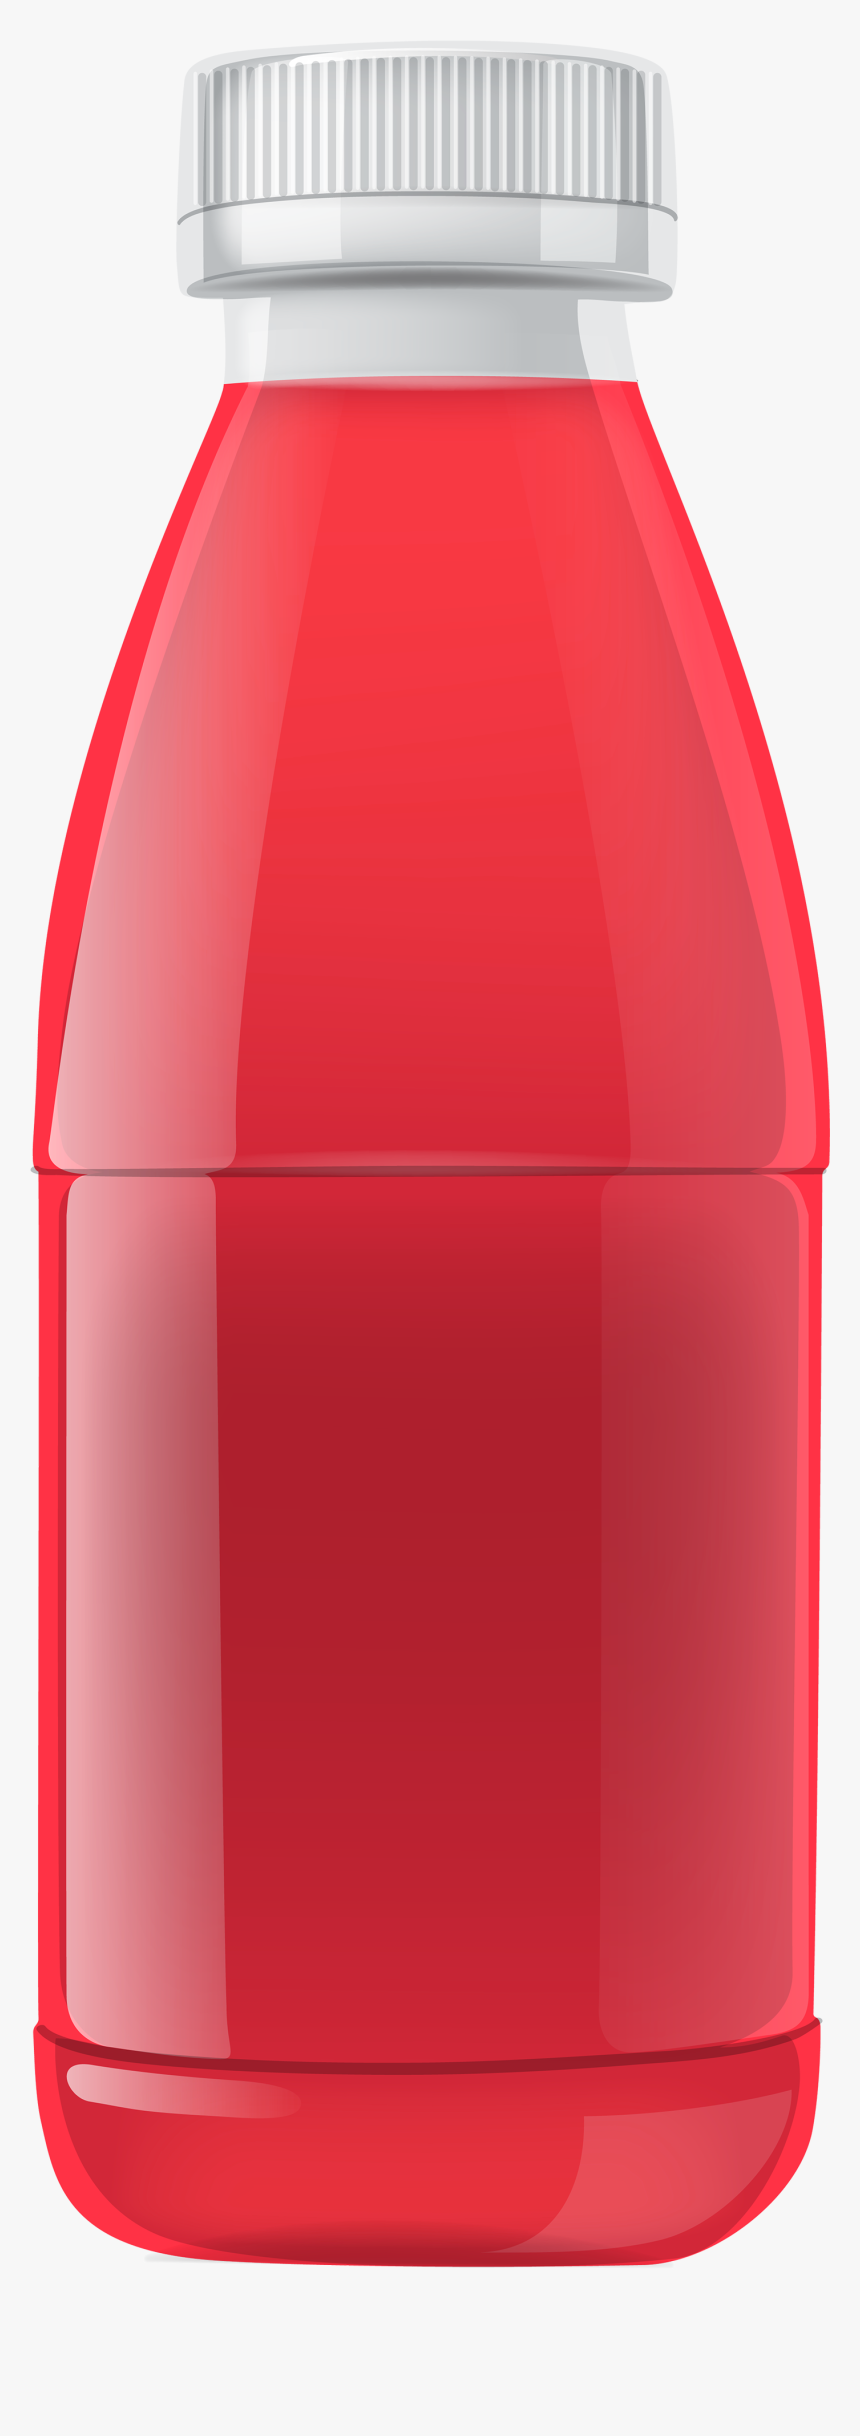 Red Juice Bottle Png Clipart - Juice Bottle Clipart Png, Transparent Png, Free Download